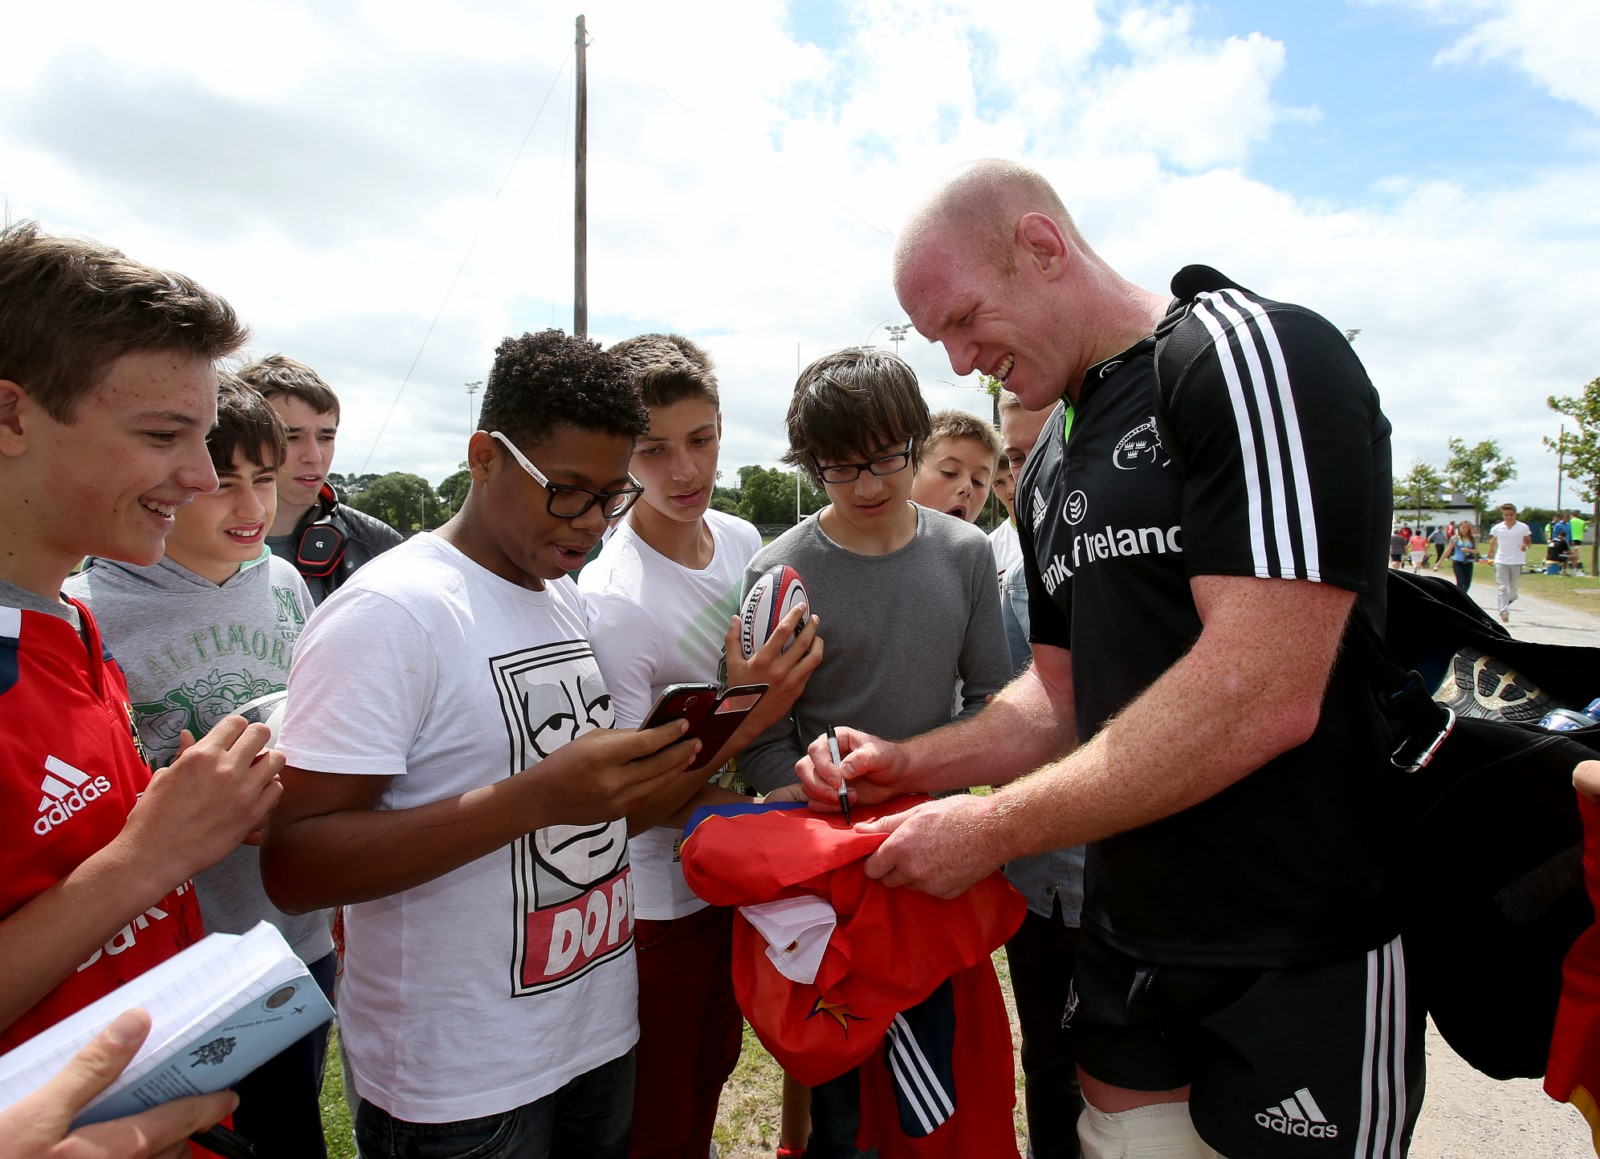 Anglais et Rugby avec le Munster Rugby Club